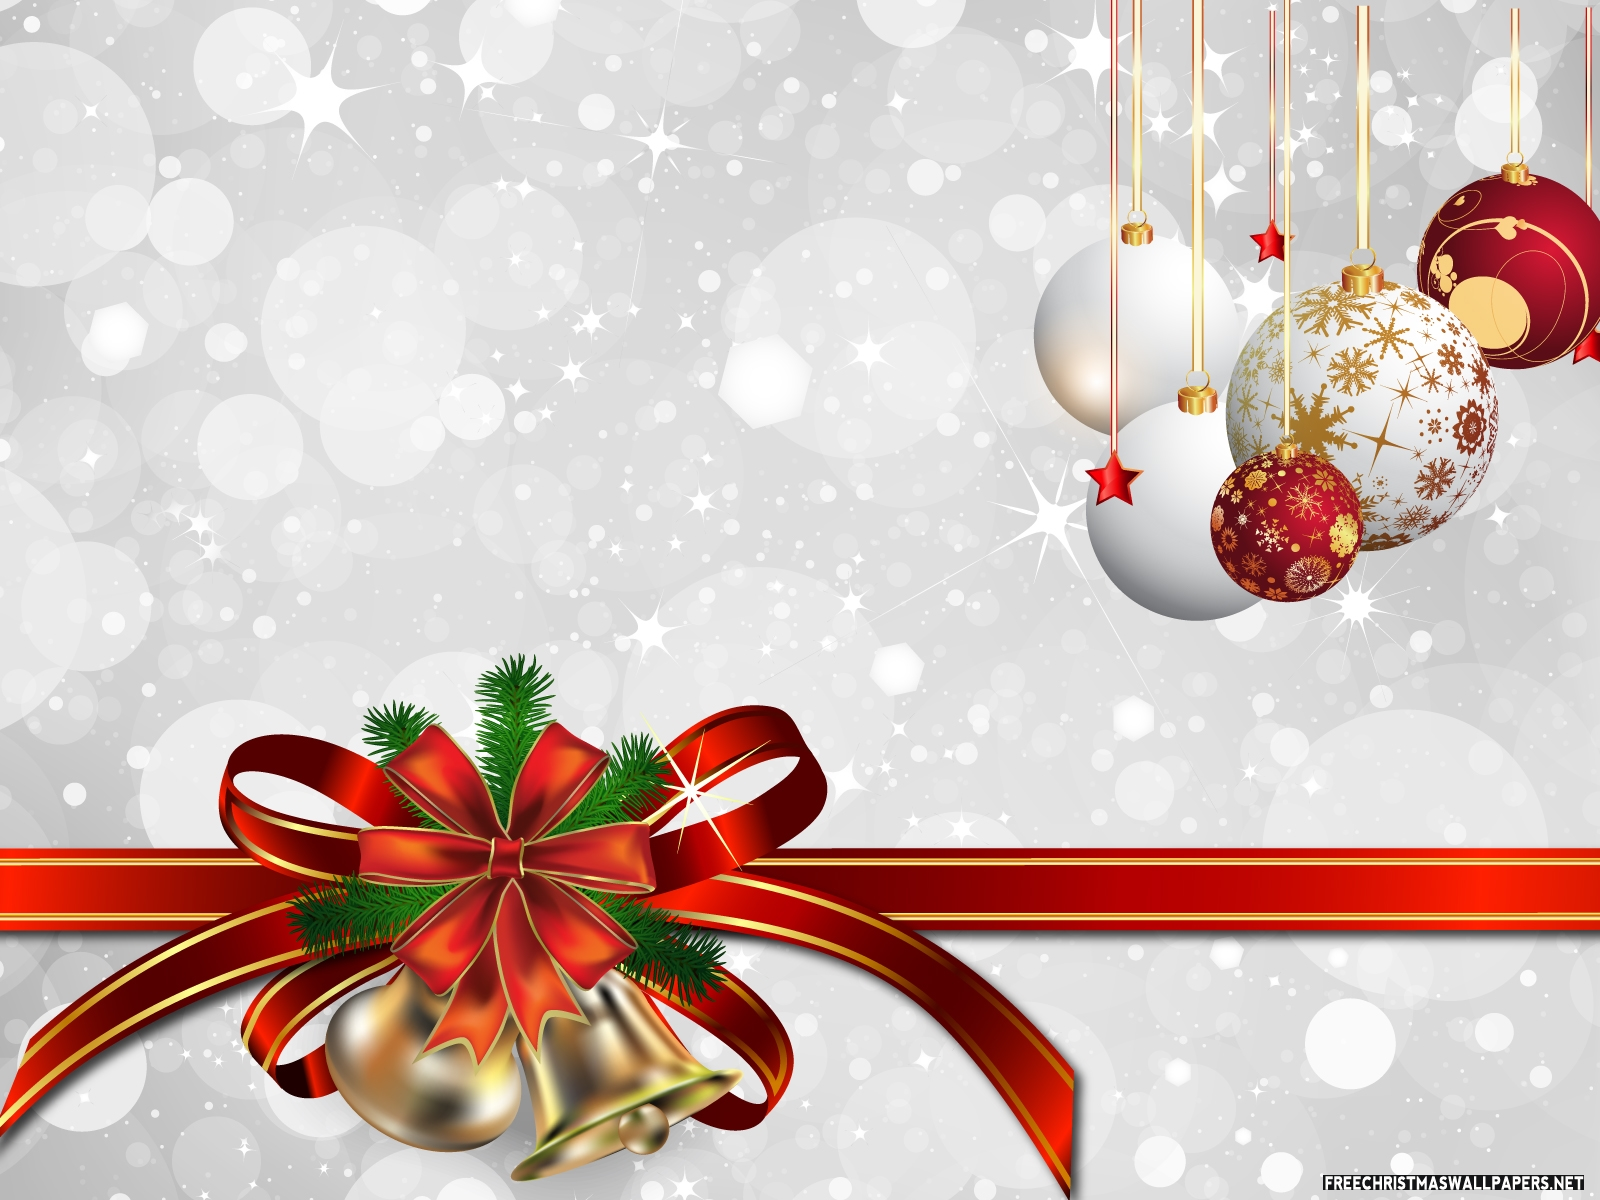 CHRISTMAS - CHRISTMAS Wallpaper (32534905) - Fanpop